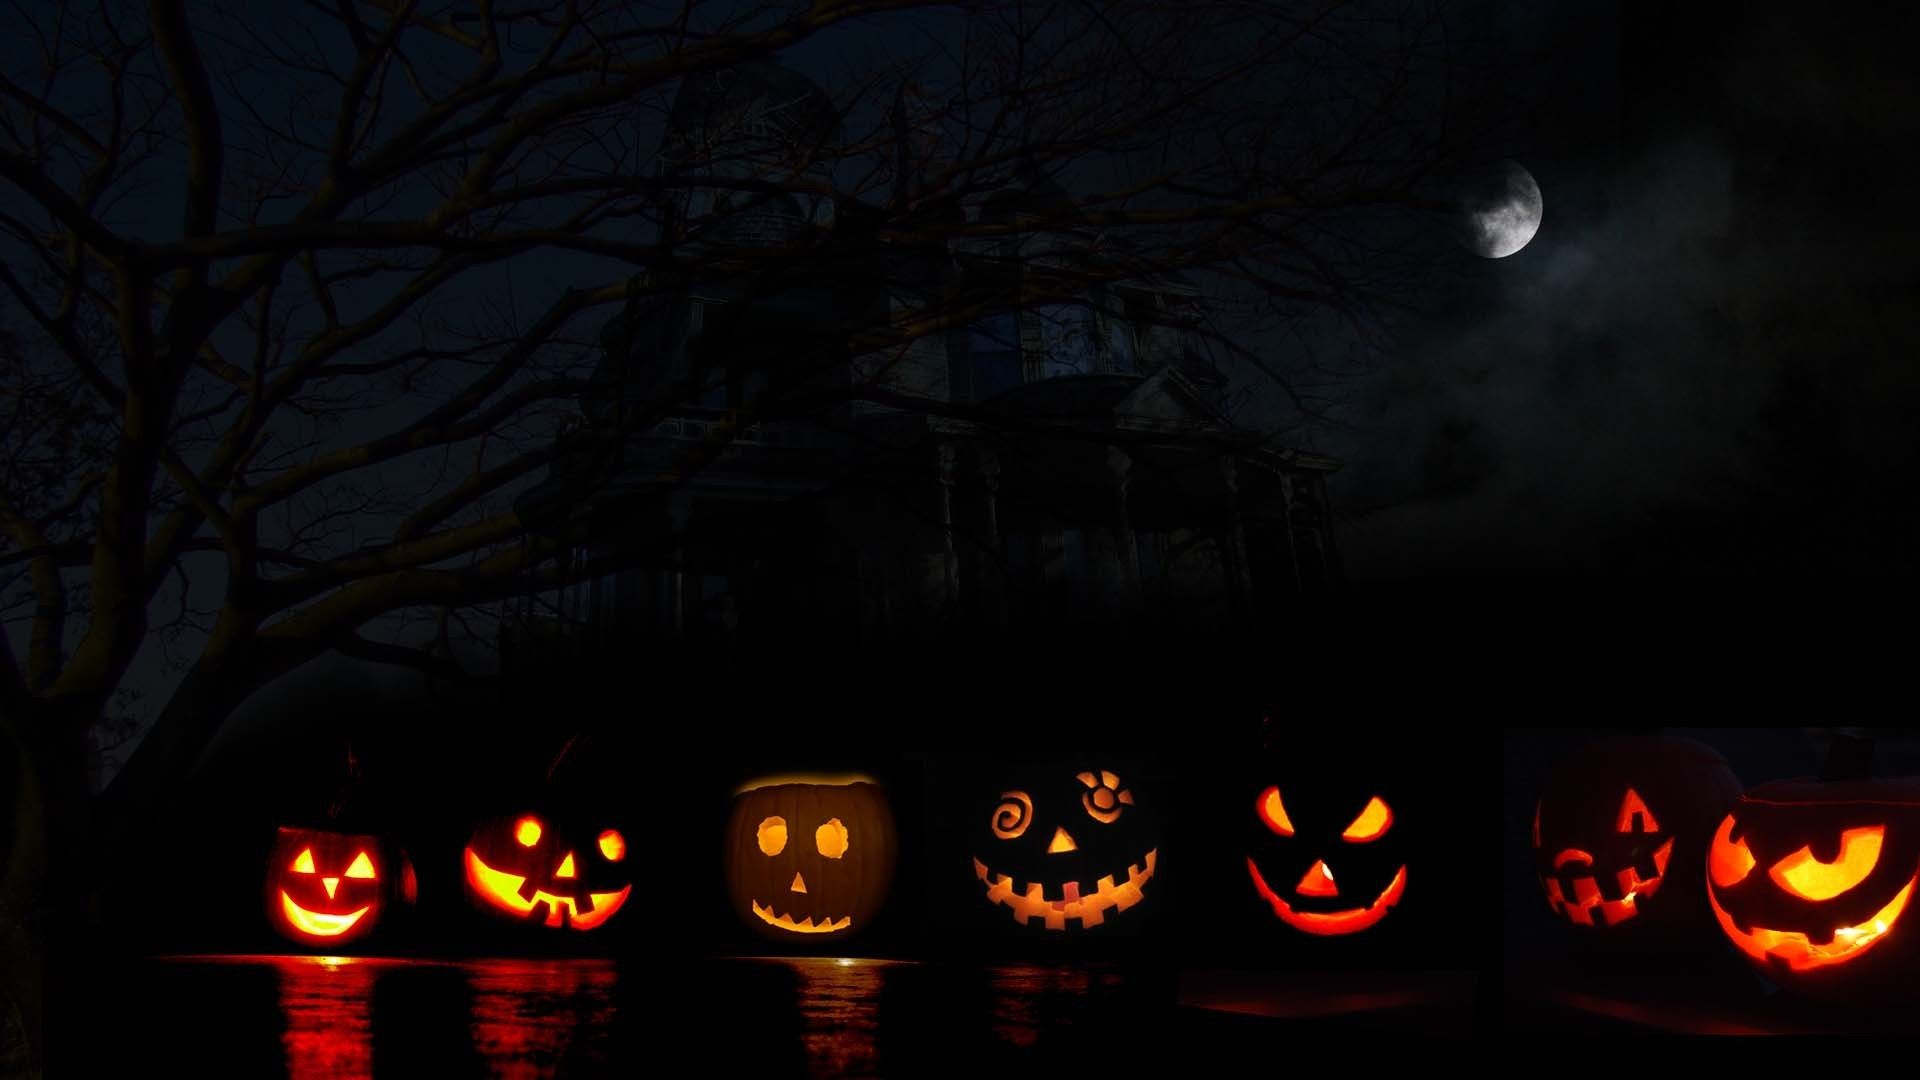 Halloween Desktop Backgrounds Wallpaper